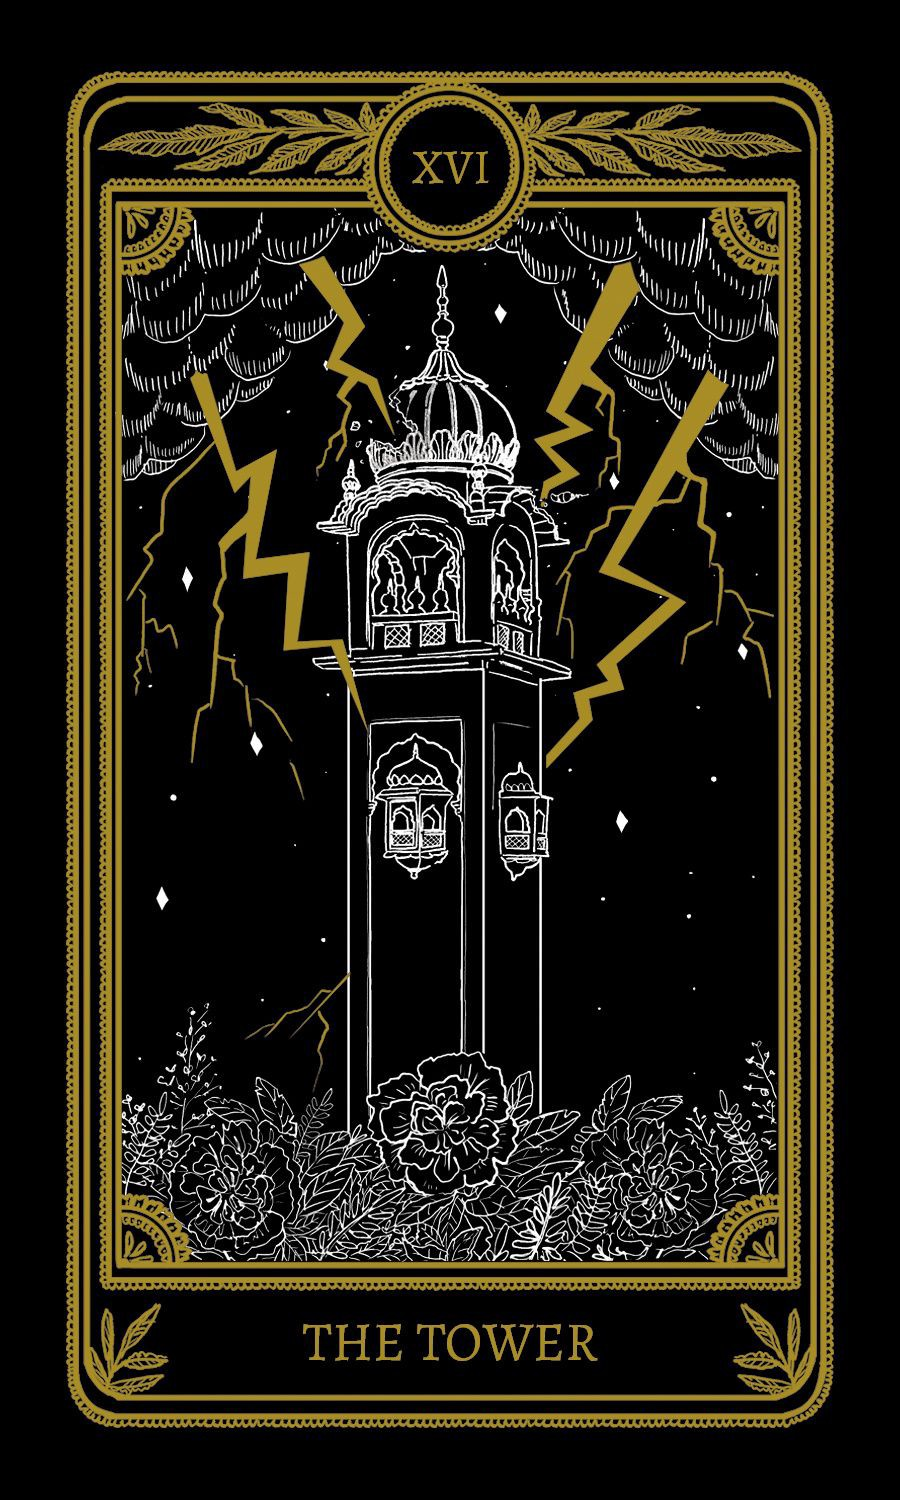 A tarot card depicting a tower that is crashing. Lighting striking it and there are flowers growing at its base.